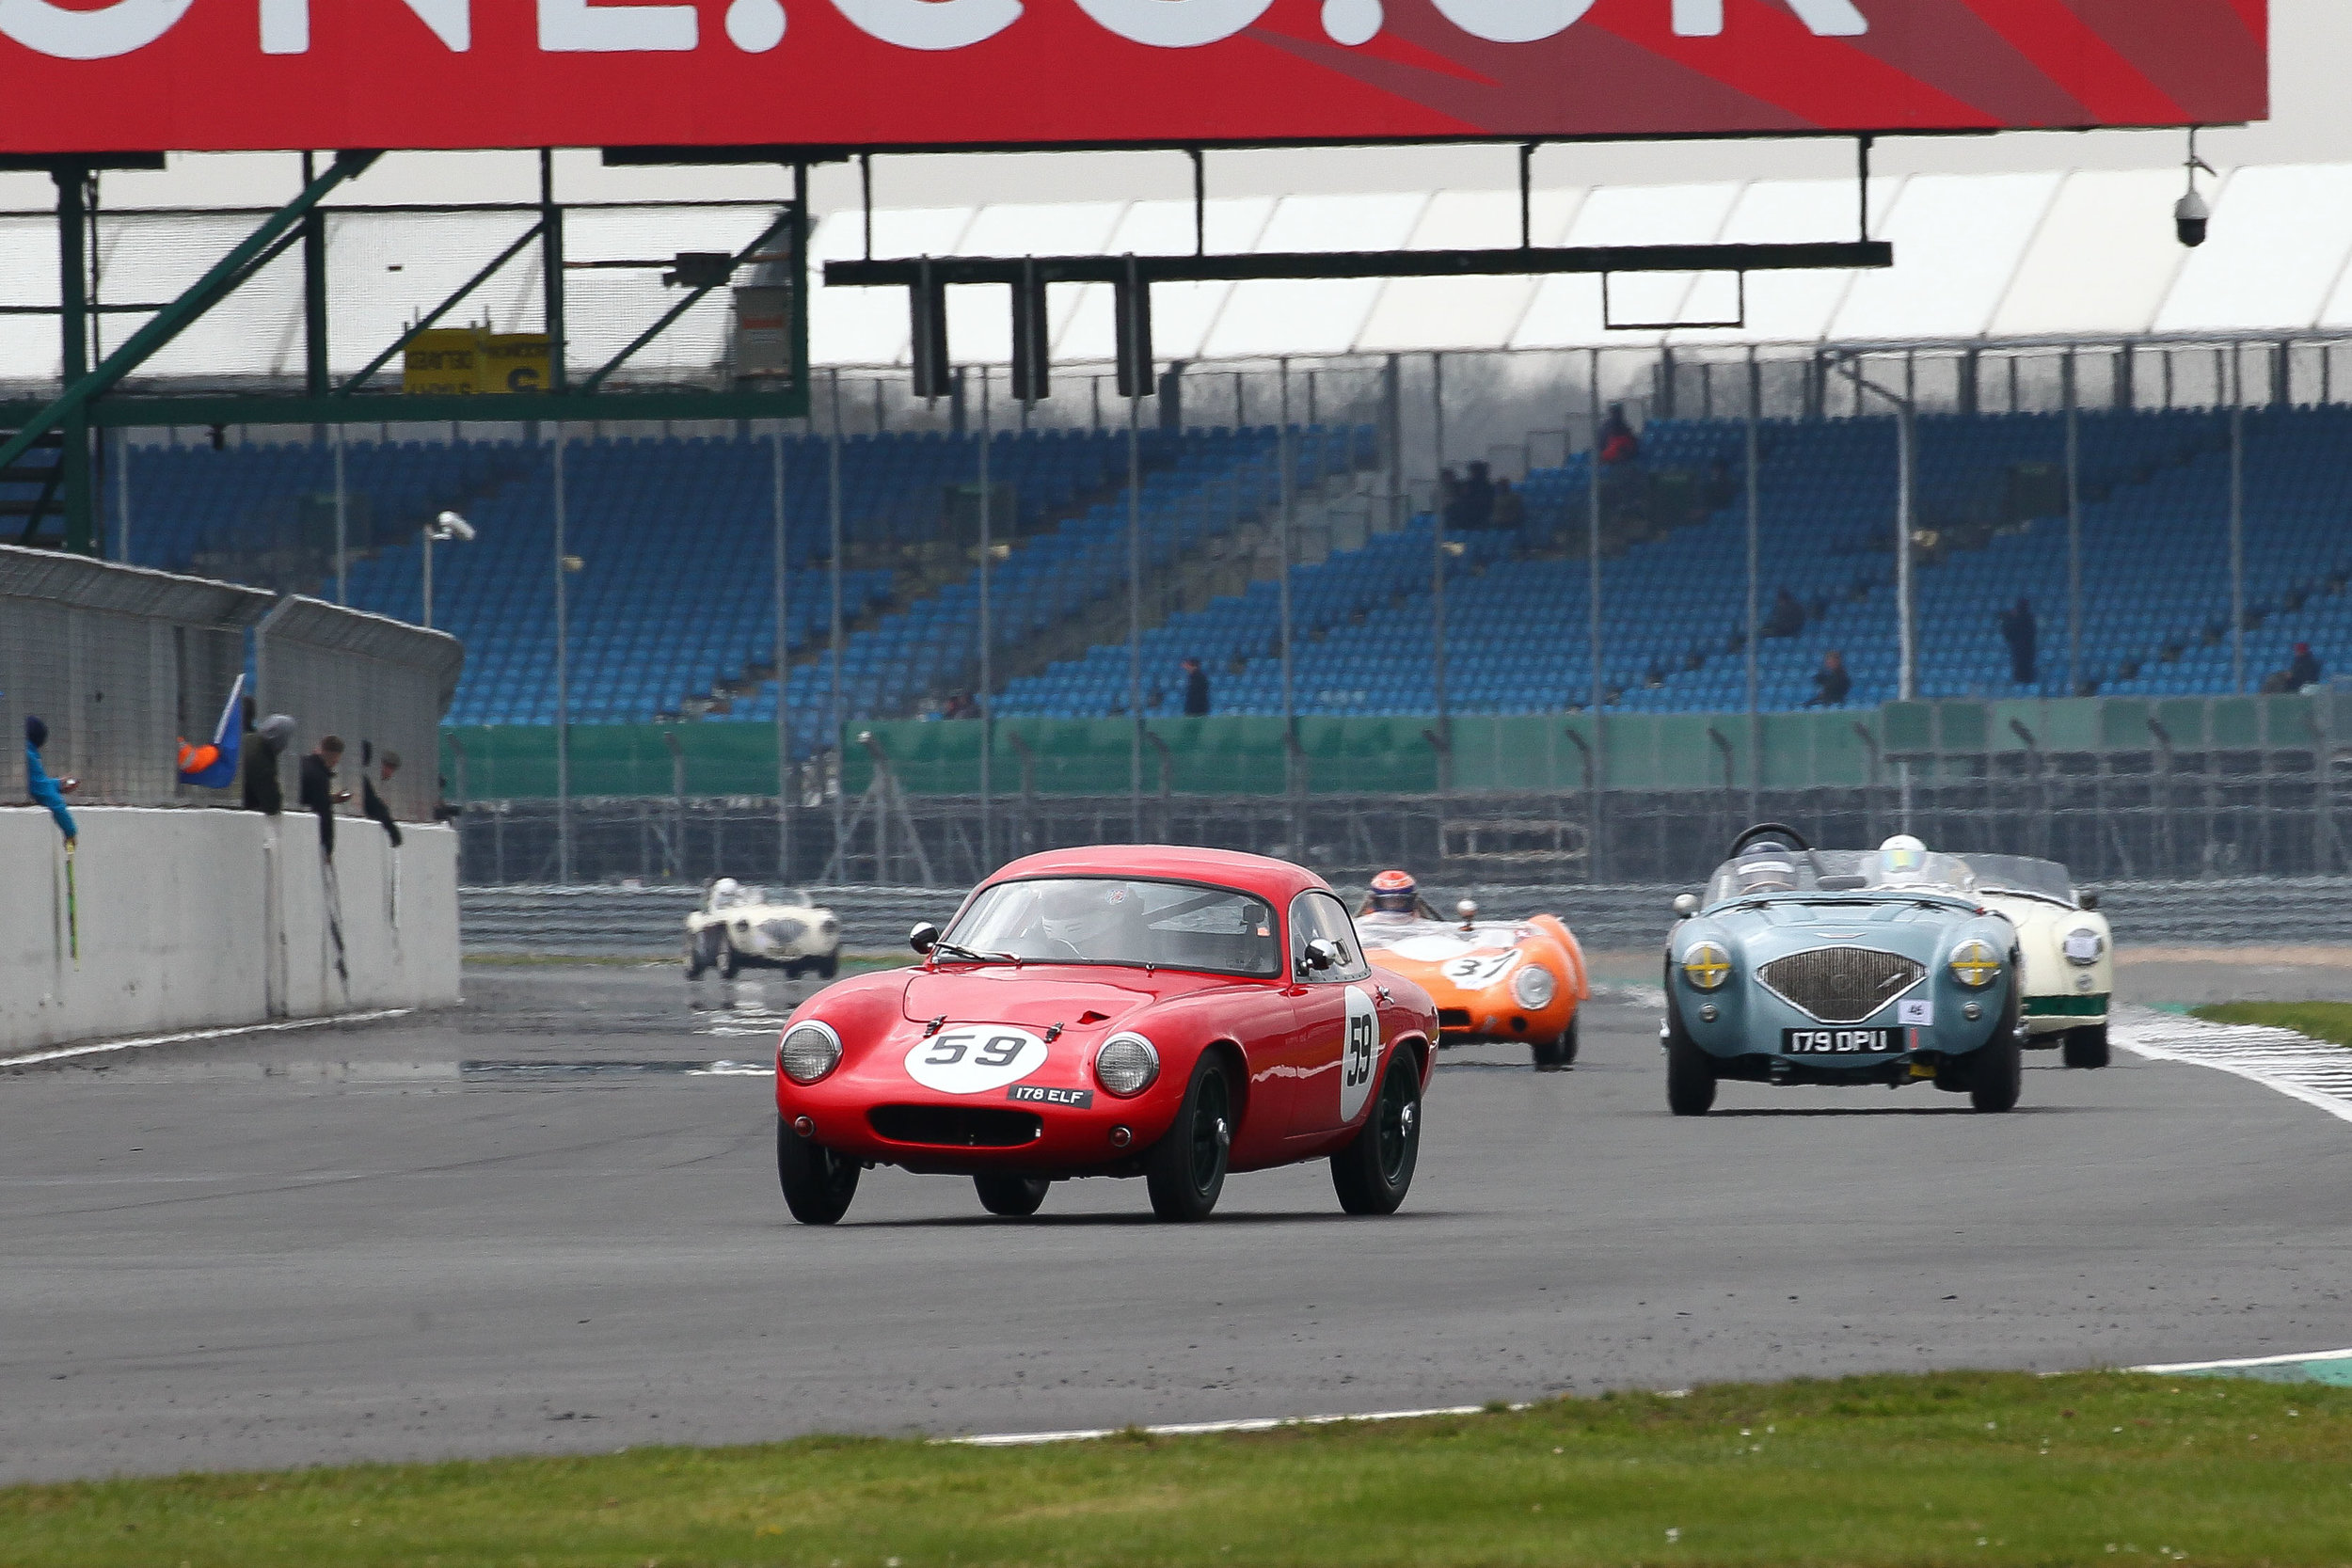 Dougal Cawley (Lotus Elite) Leads Robert Clarke (Austin Healey 100) and Nick Burnside (MGA Twin Cam). They are all about to be lapped by the leader, Philip Walker in the orange Lotus 15. In the background, is Matthew Collings in his Austin Healey 100M. Photo - Richard Styles